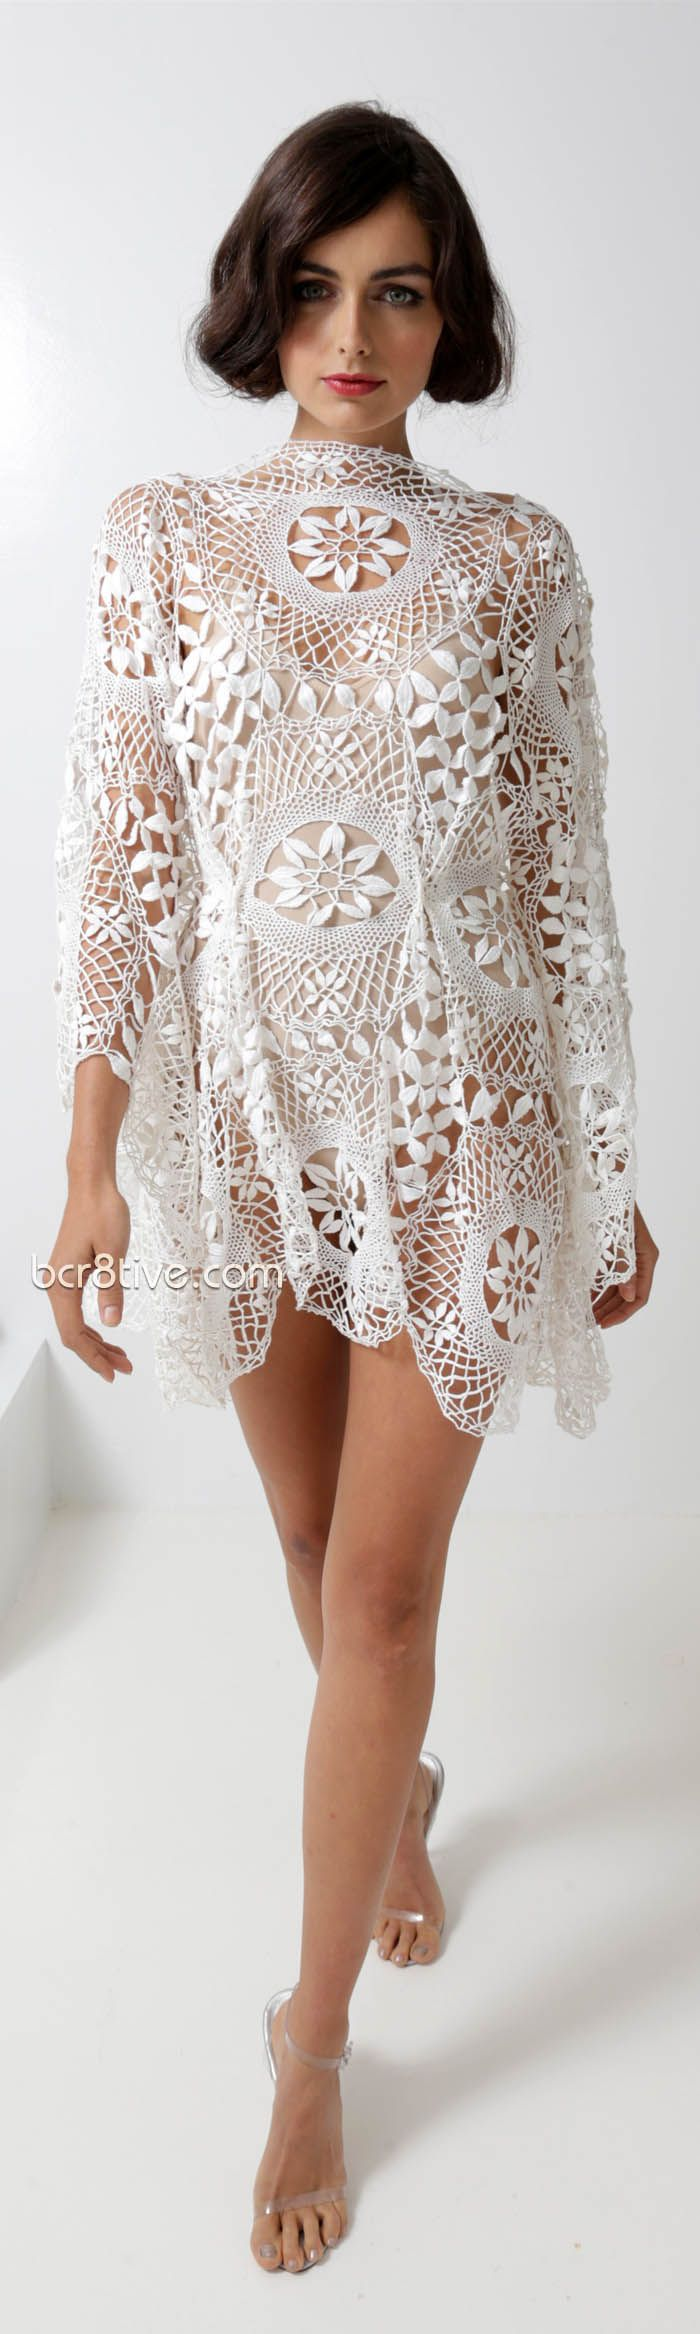 Norma Kamali Spring Summer 2013 Ready To Wear Collection. No pattern but it doesn't look too hard to figure out.